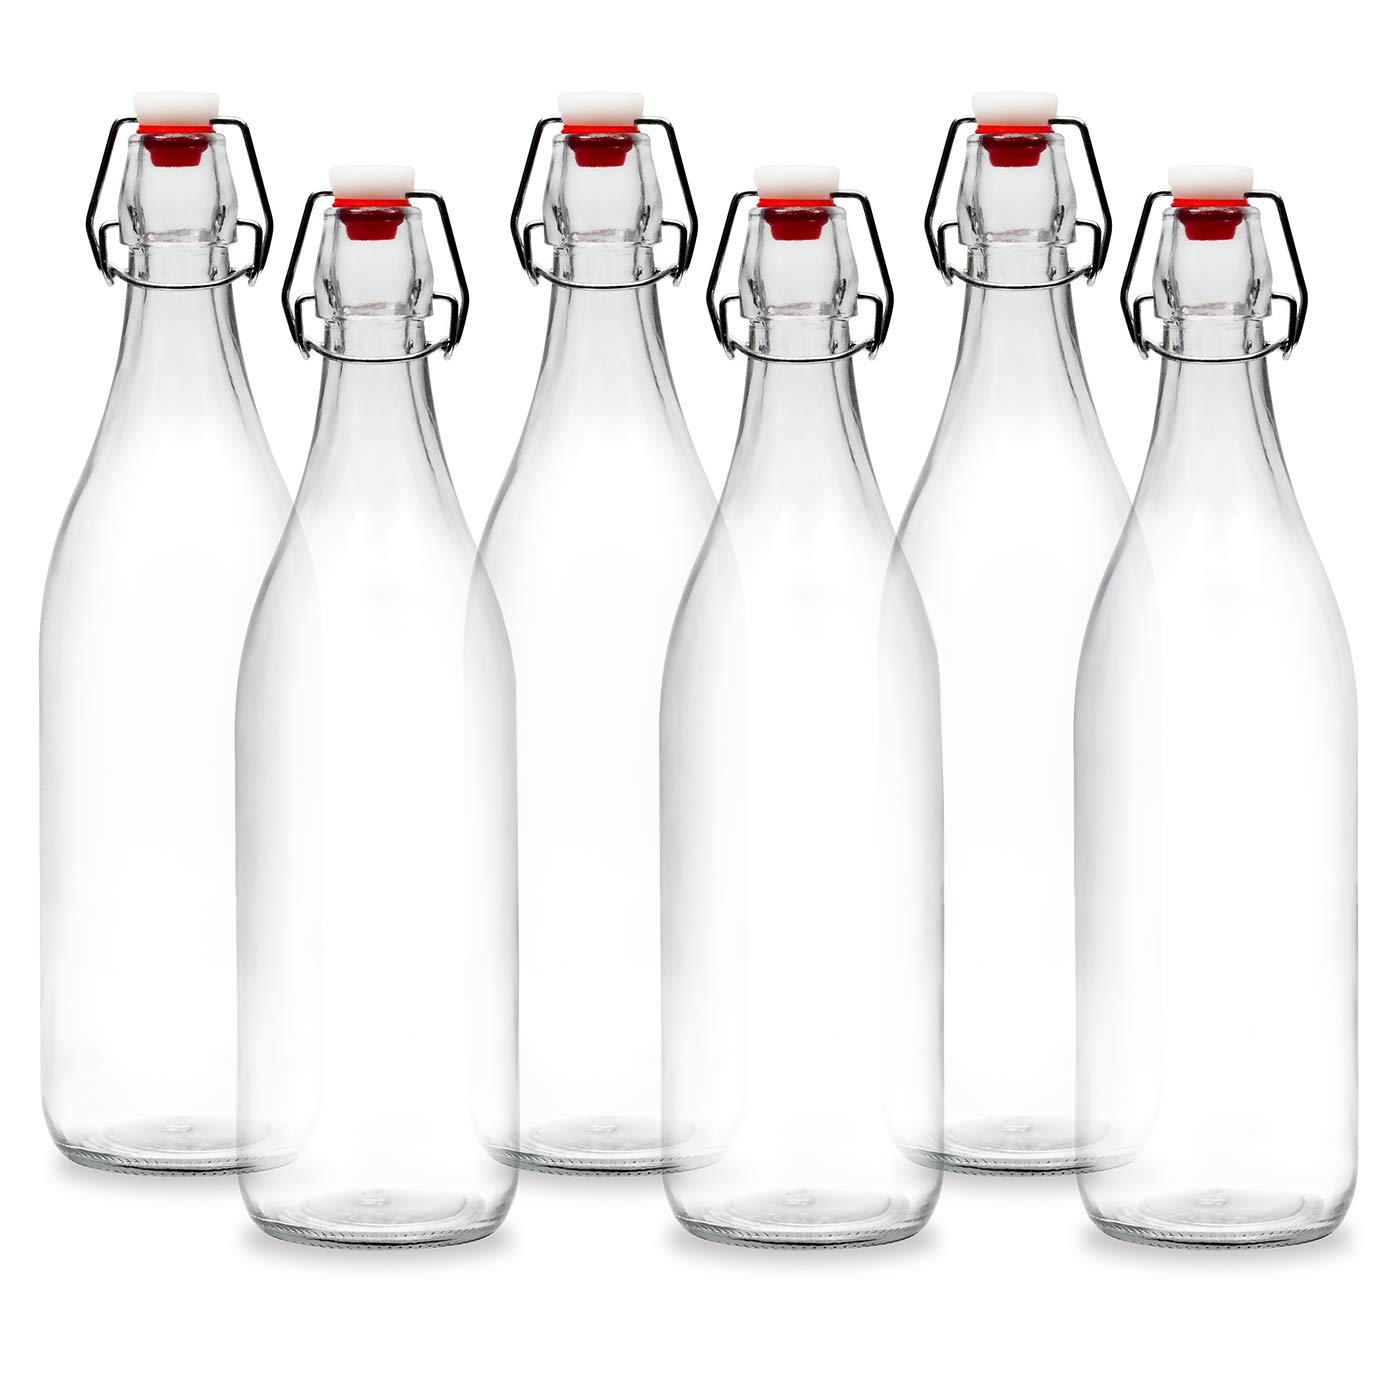 Americanflat 6 Pack - 900ml (30oz) Glass Bottle - Home Brewing Bottles with Easy to Open & Close Seals - Swing Top Bottles with Airtight Lids for Oil, Vinegar, Beverages, Liquor, Beer, Water, Kombucha